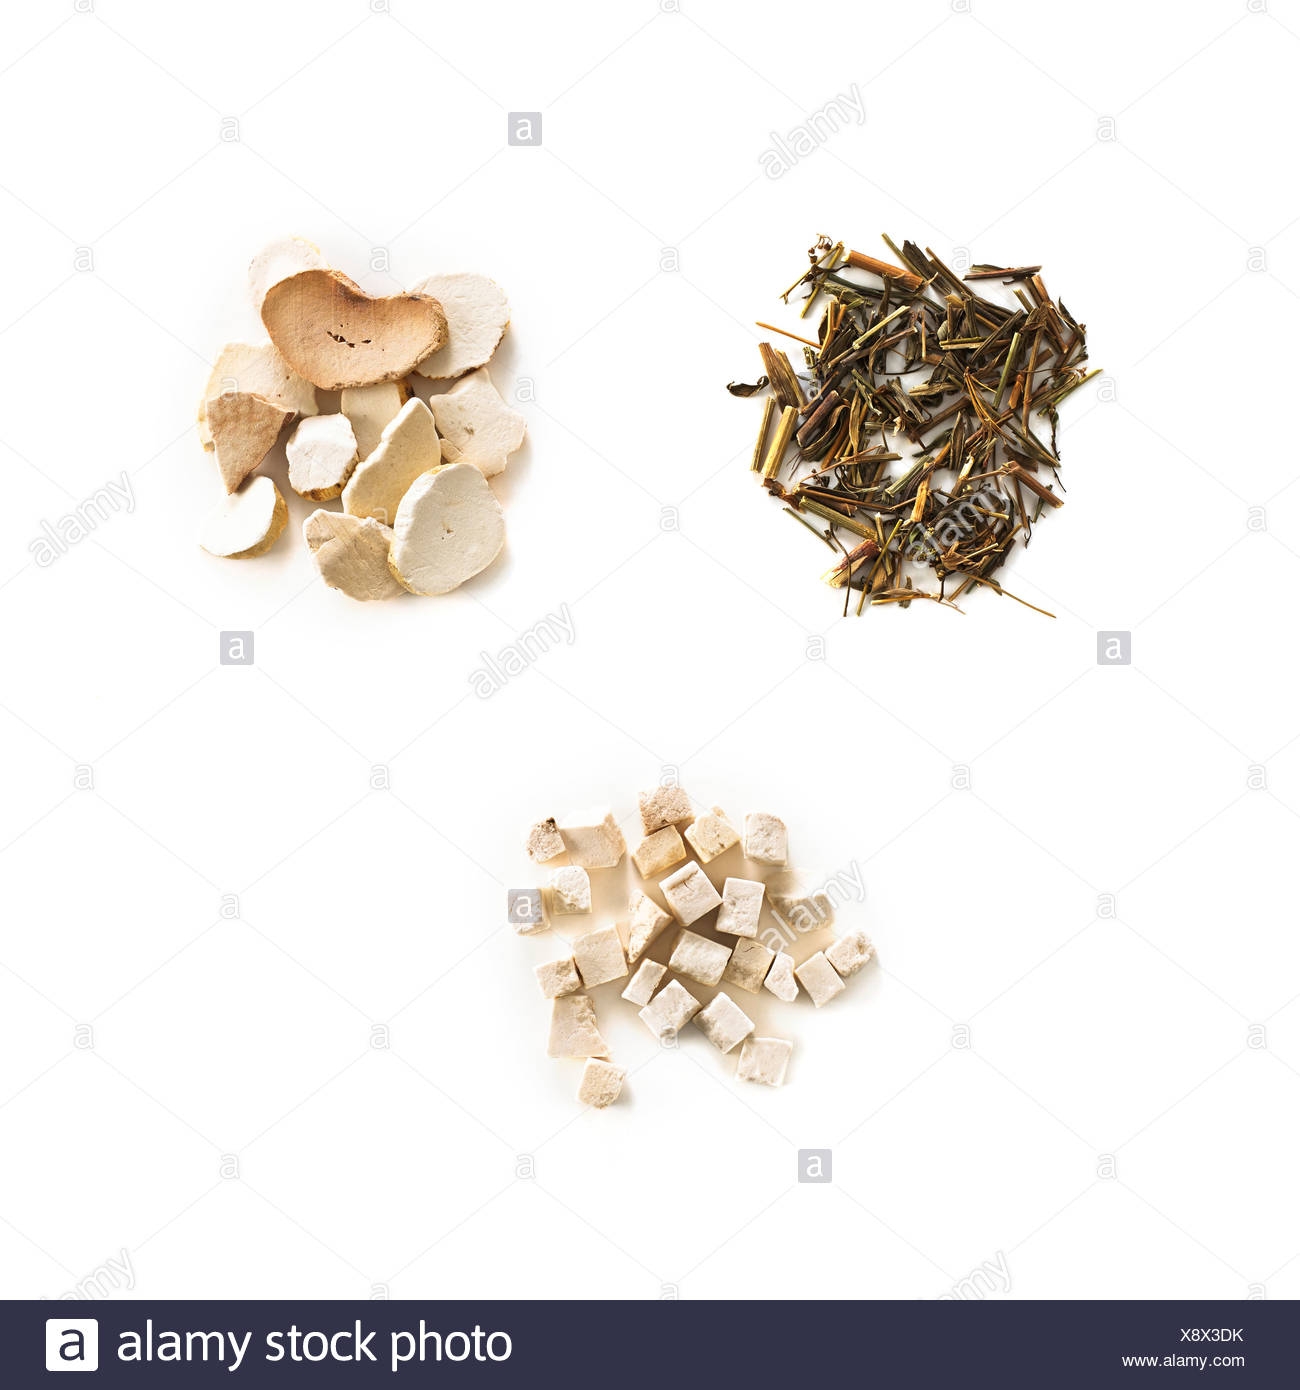 Chinese herbal medicines - Stock Image